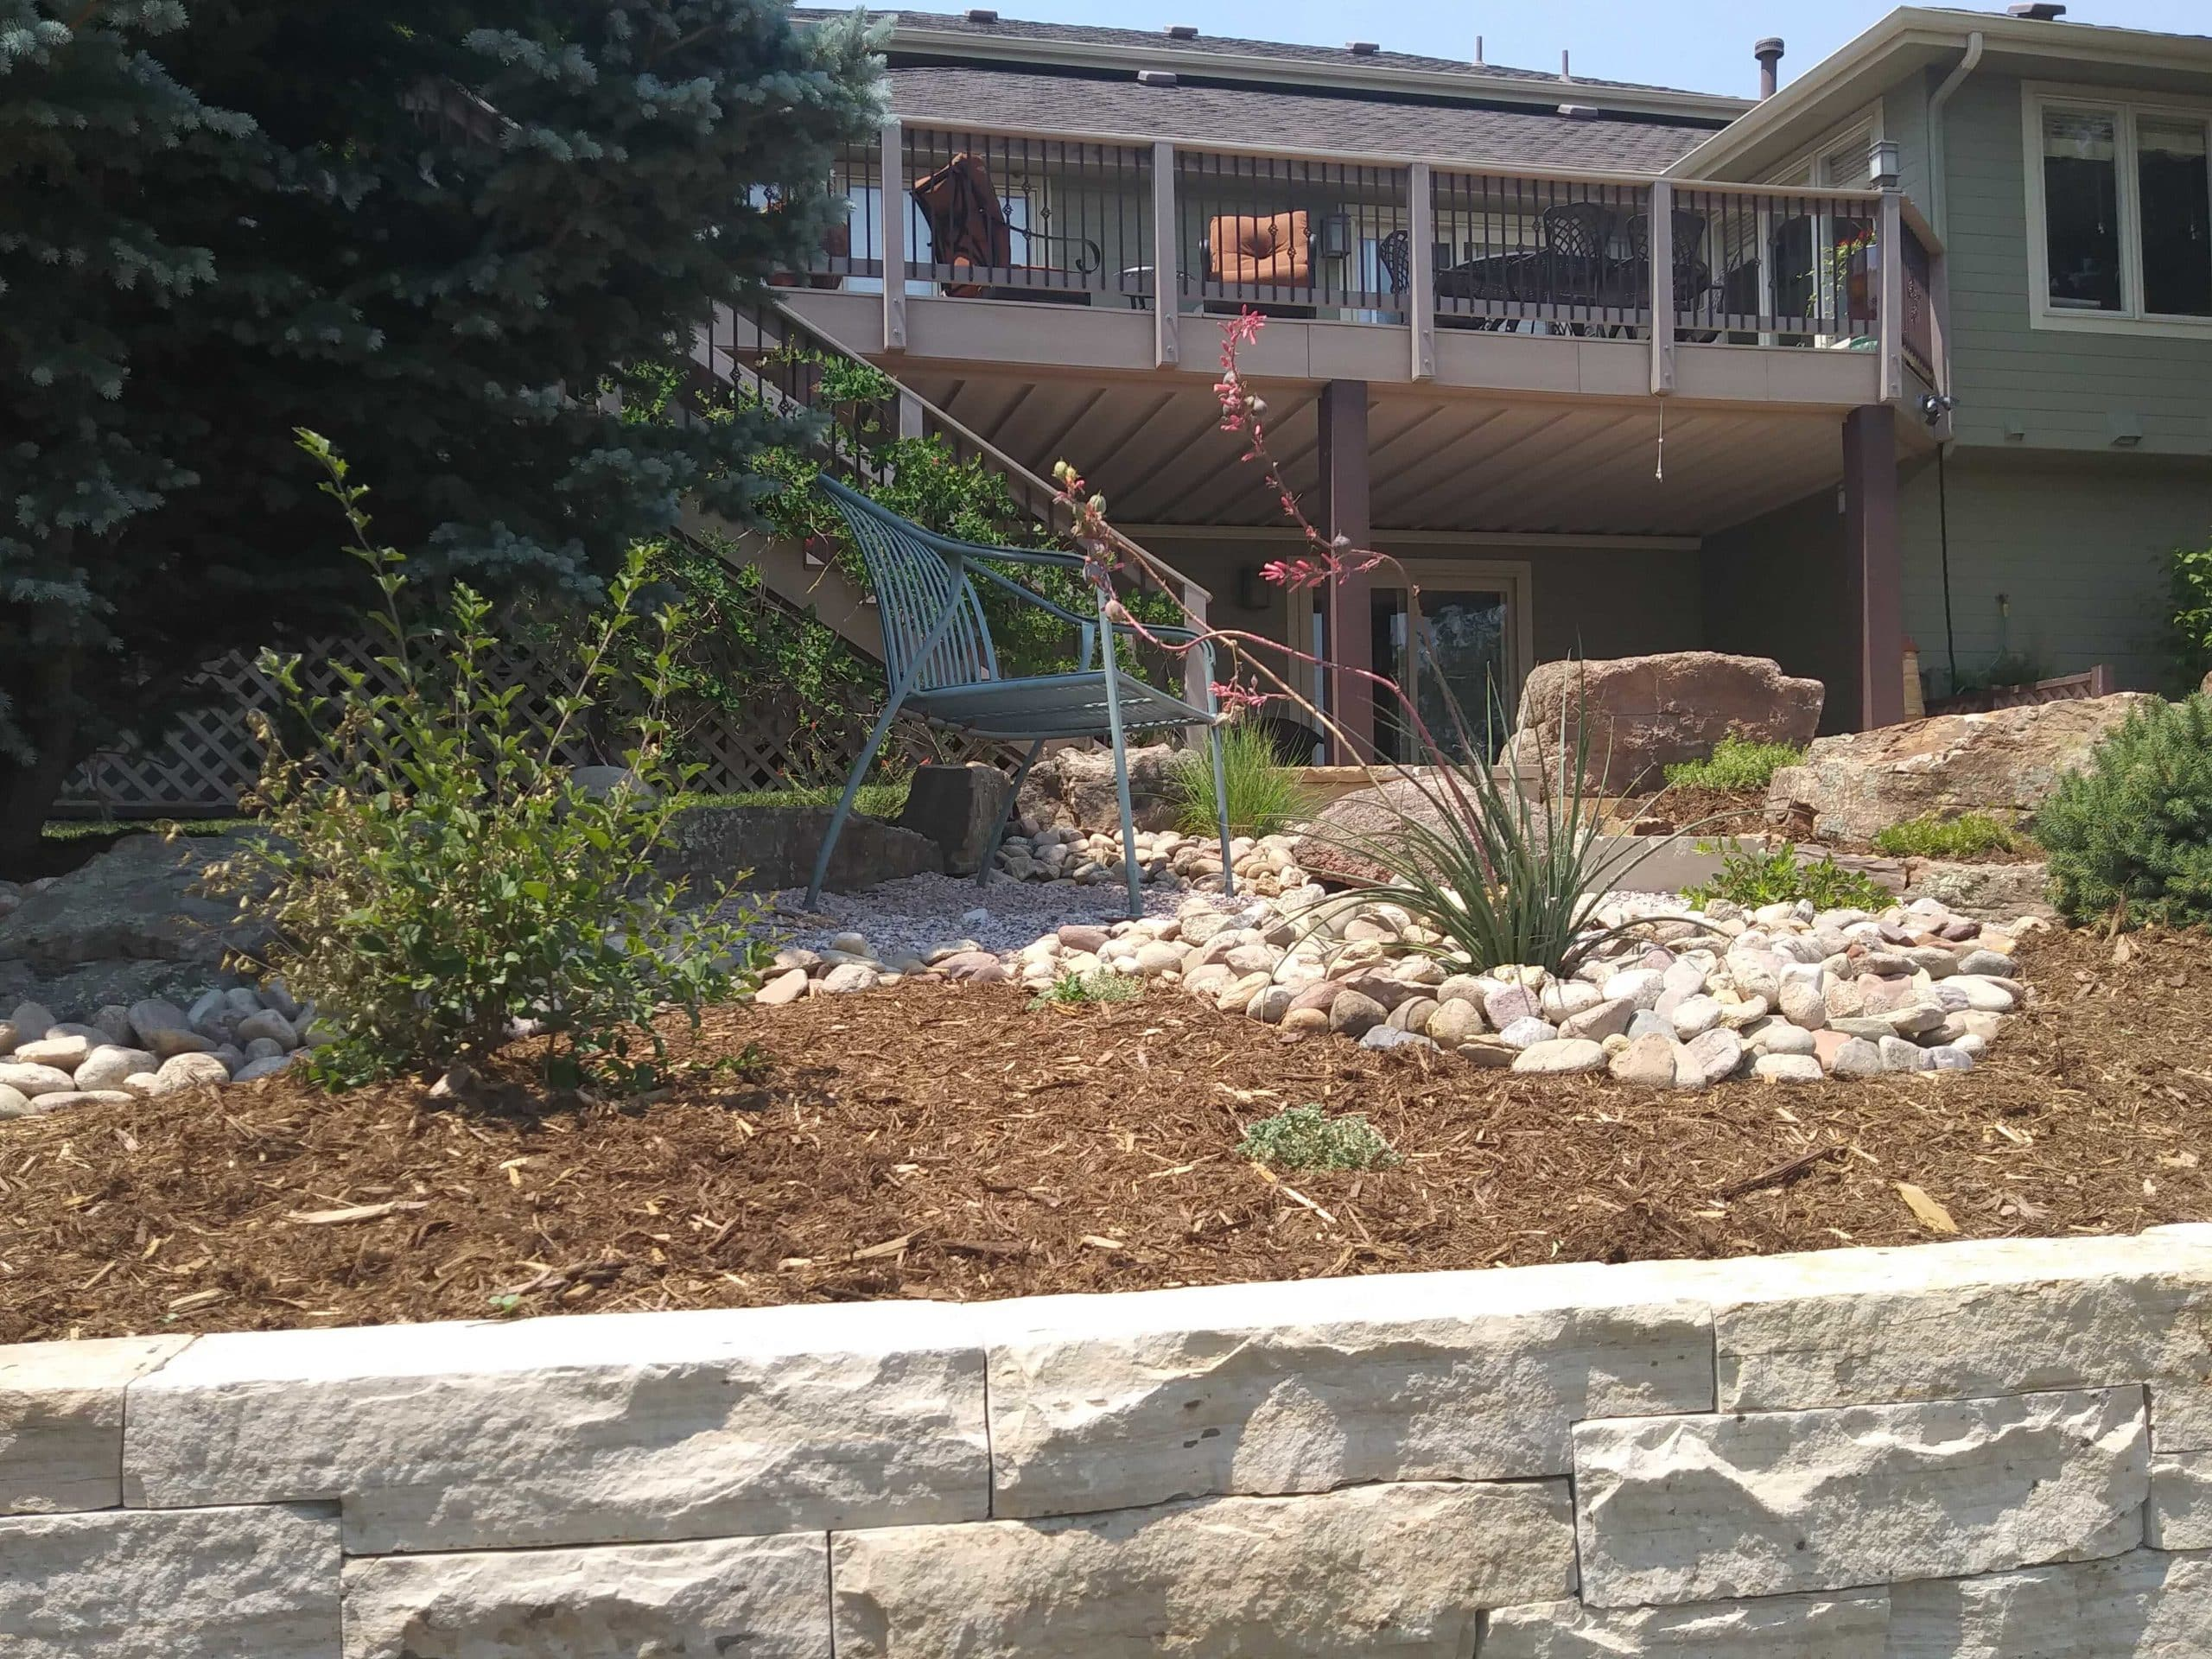 Backyard deck with rock, mulch, and gravel path to bench.